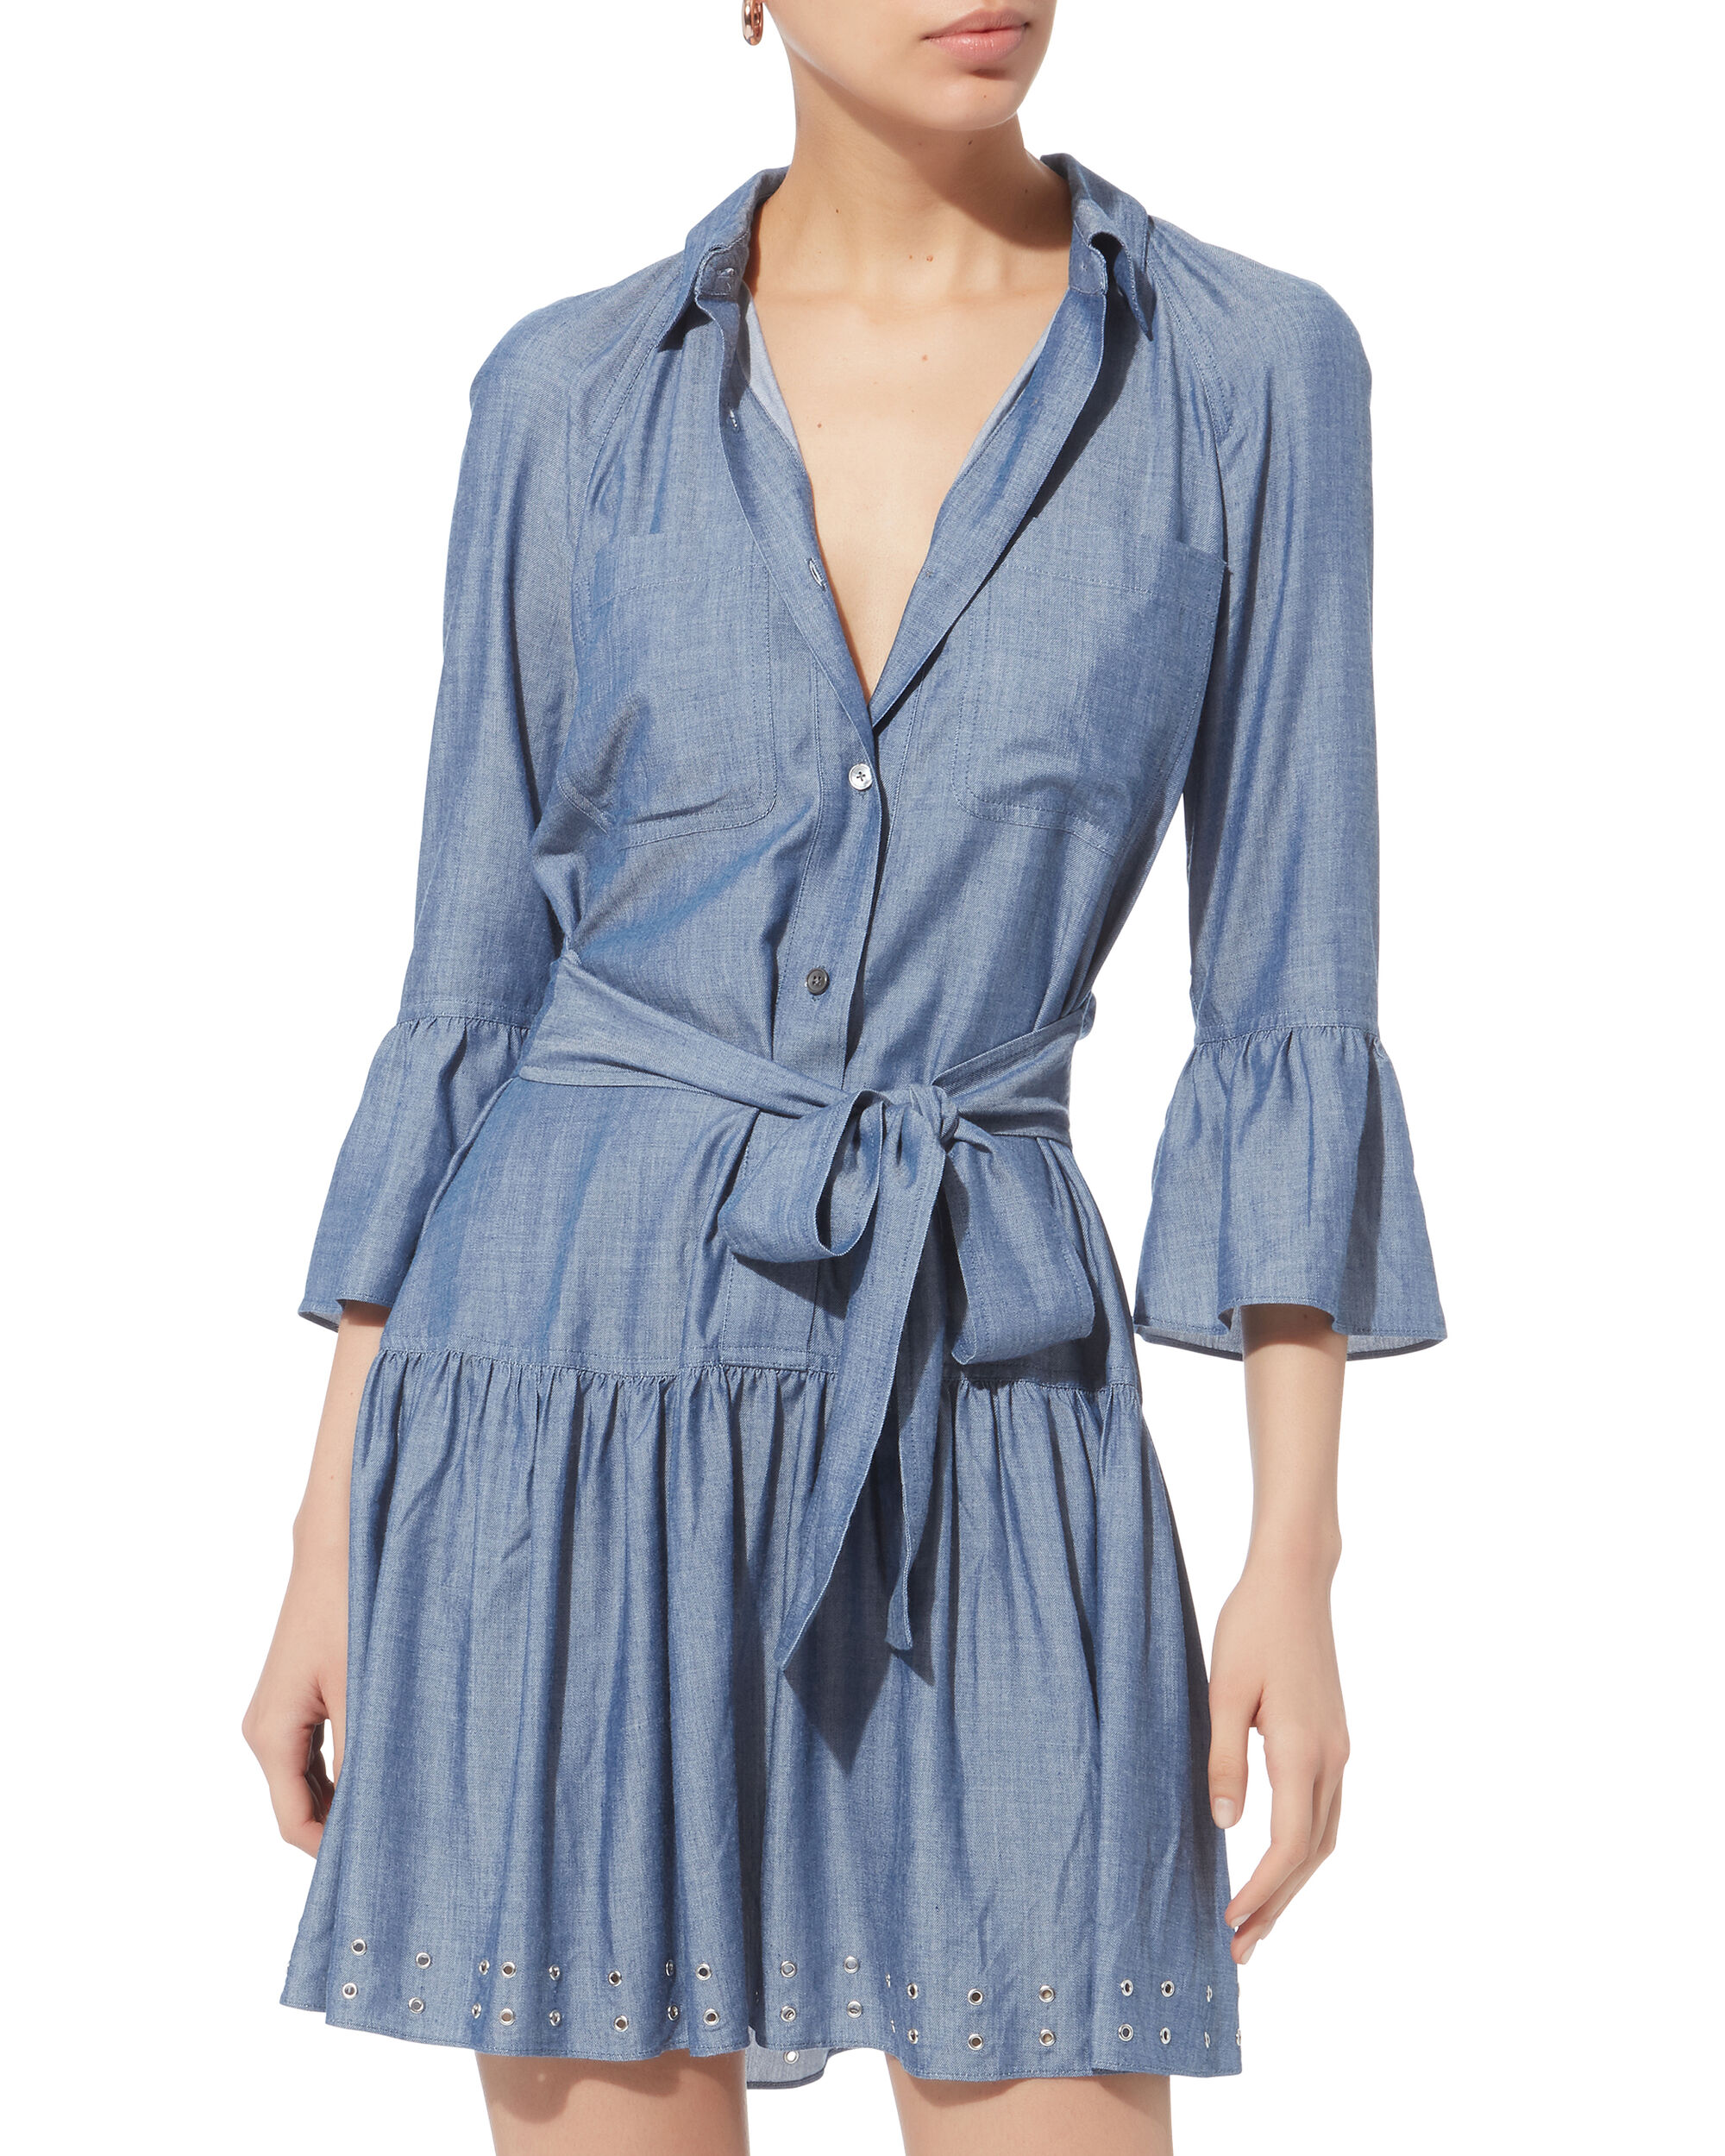 Grommet Denim Dress, BLUE-MED, hi-res